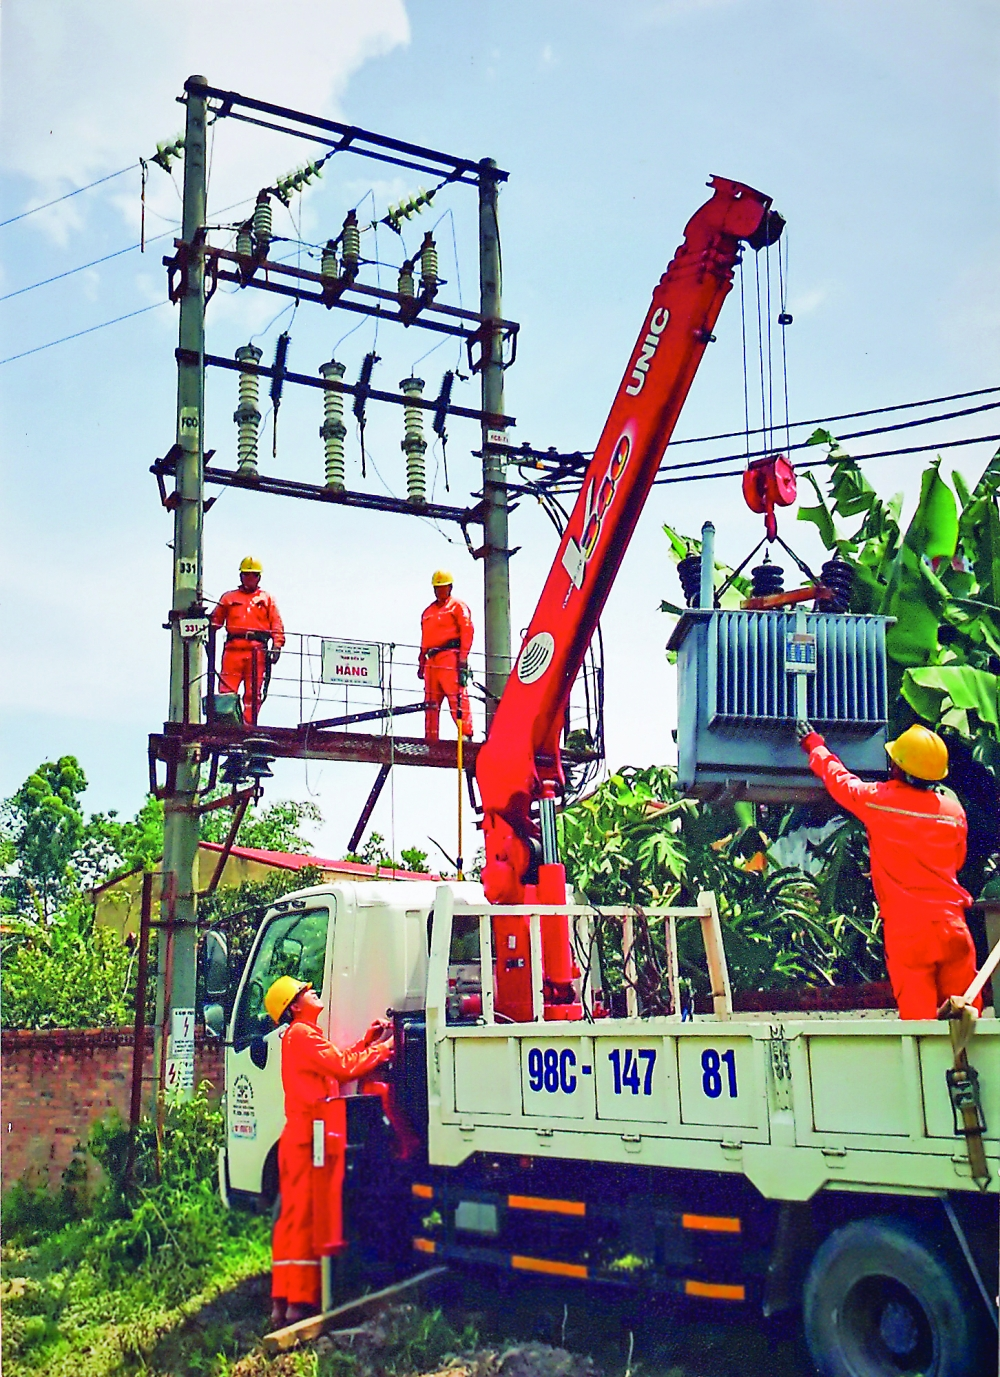 vietnams electricity access up for 6th consecutive year